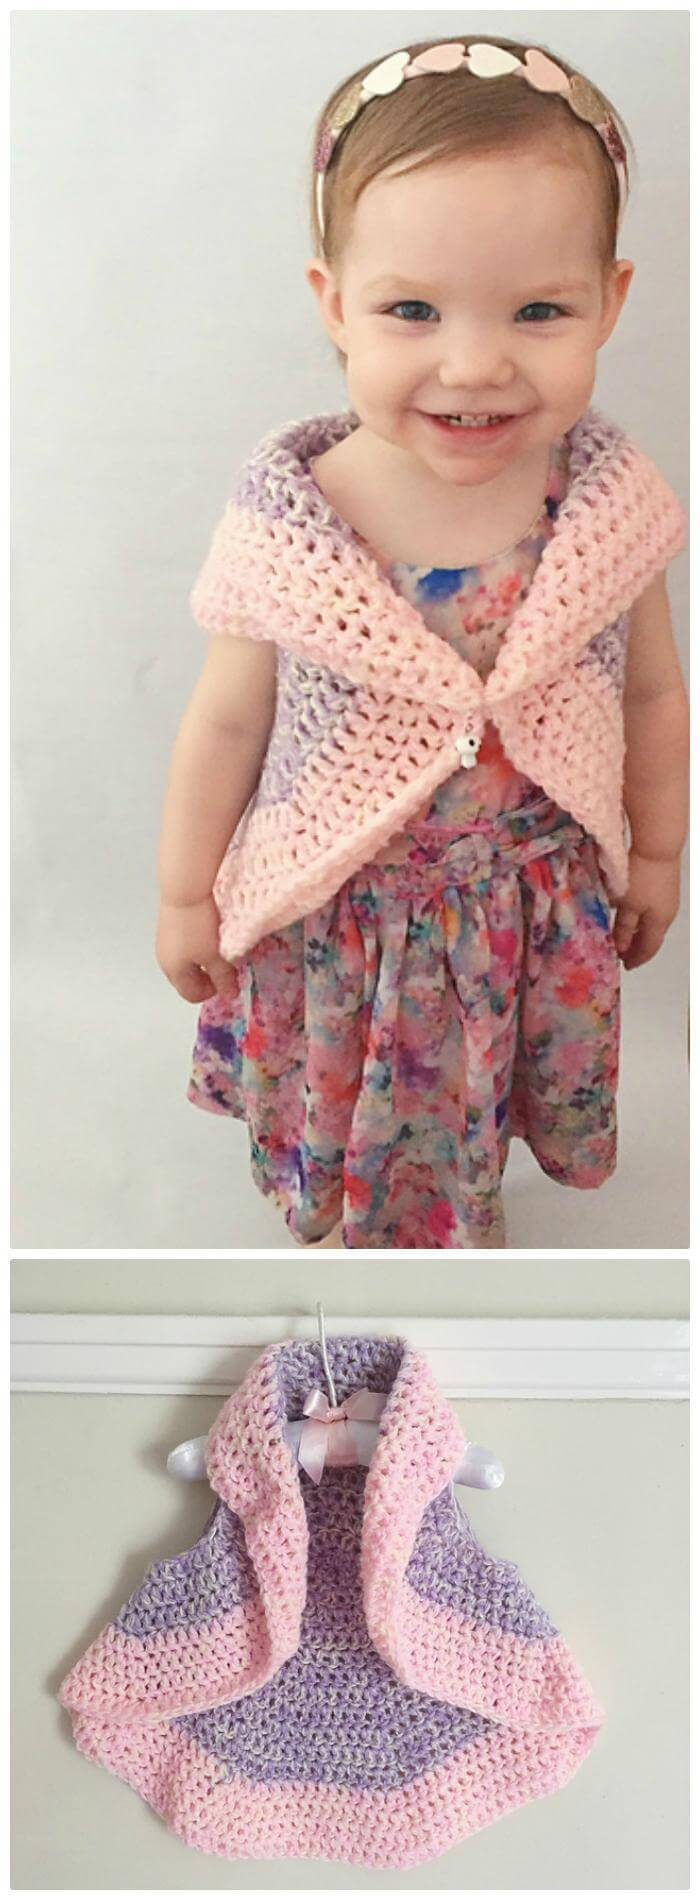 Crochet Circular Vest / Jacket 10 FREE Crochet Patterns - DIY & Crafts